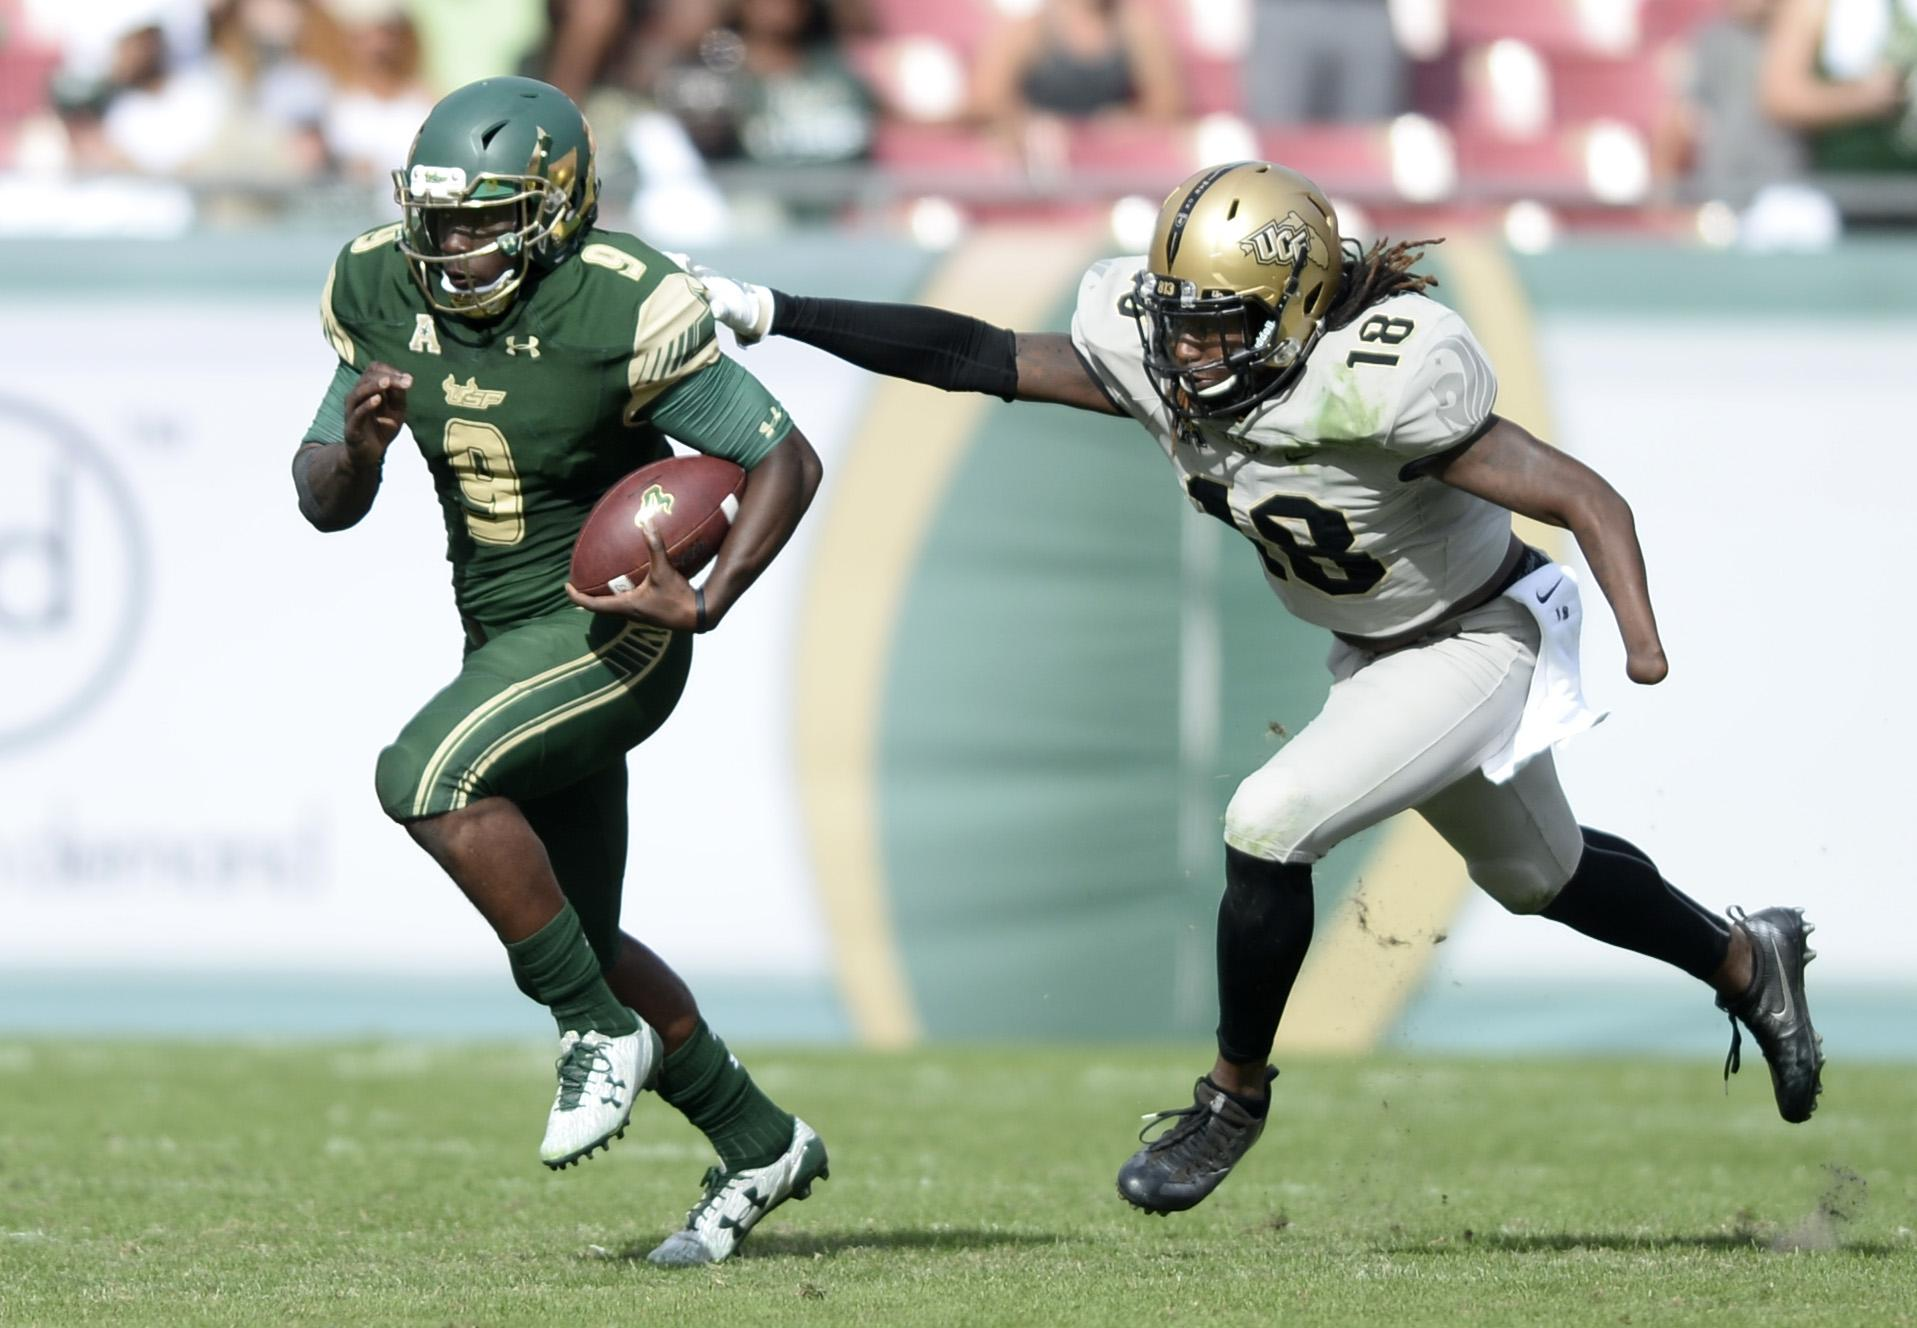 Shaquem attempts to tackle a rival player with the ball while playing for University of Central Florida